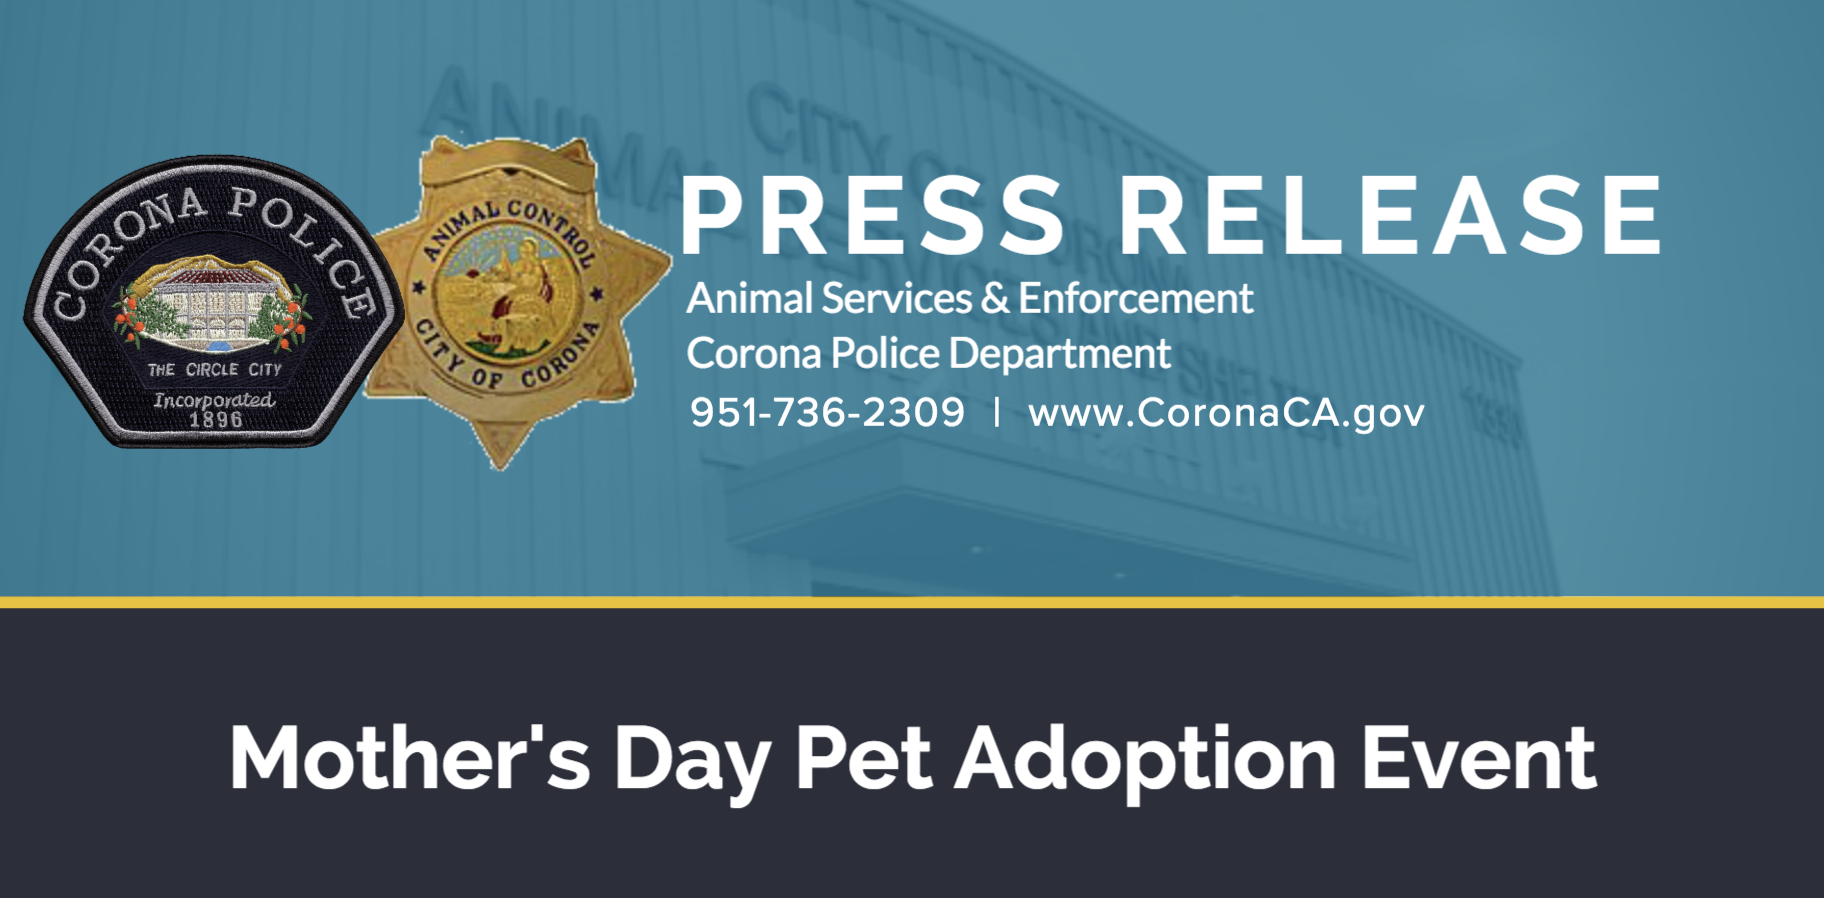 Mother's Day Pet Adoption Event